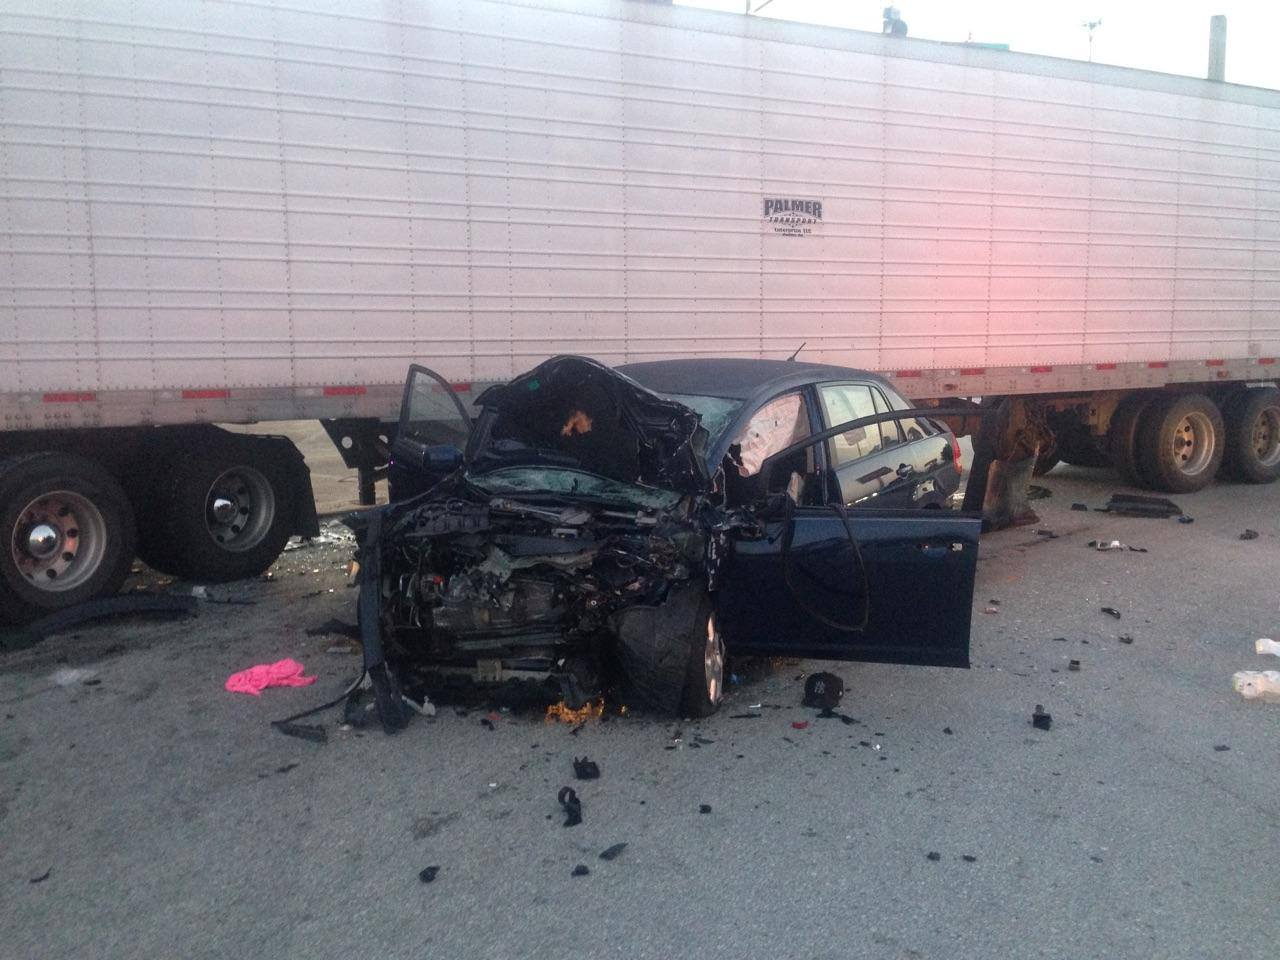 Ocala Post - FHP: No charges in accident; lack of evidence